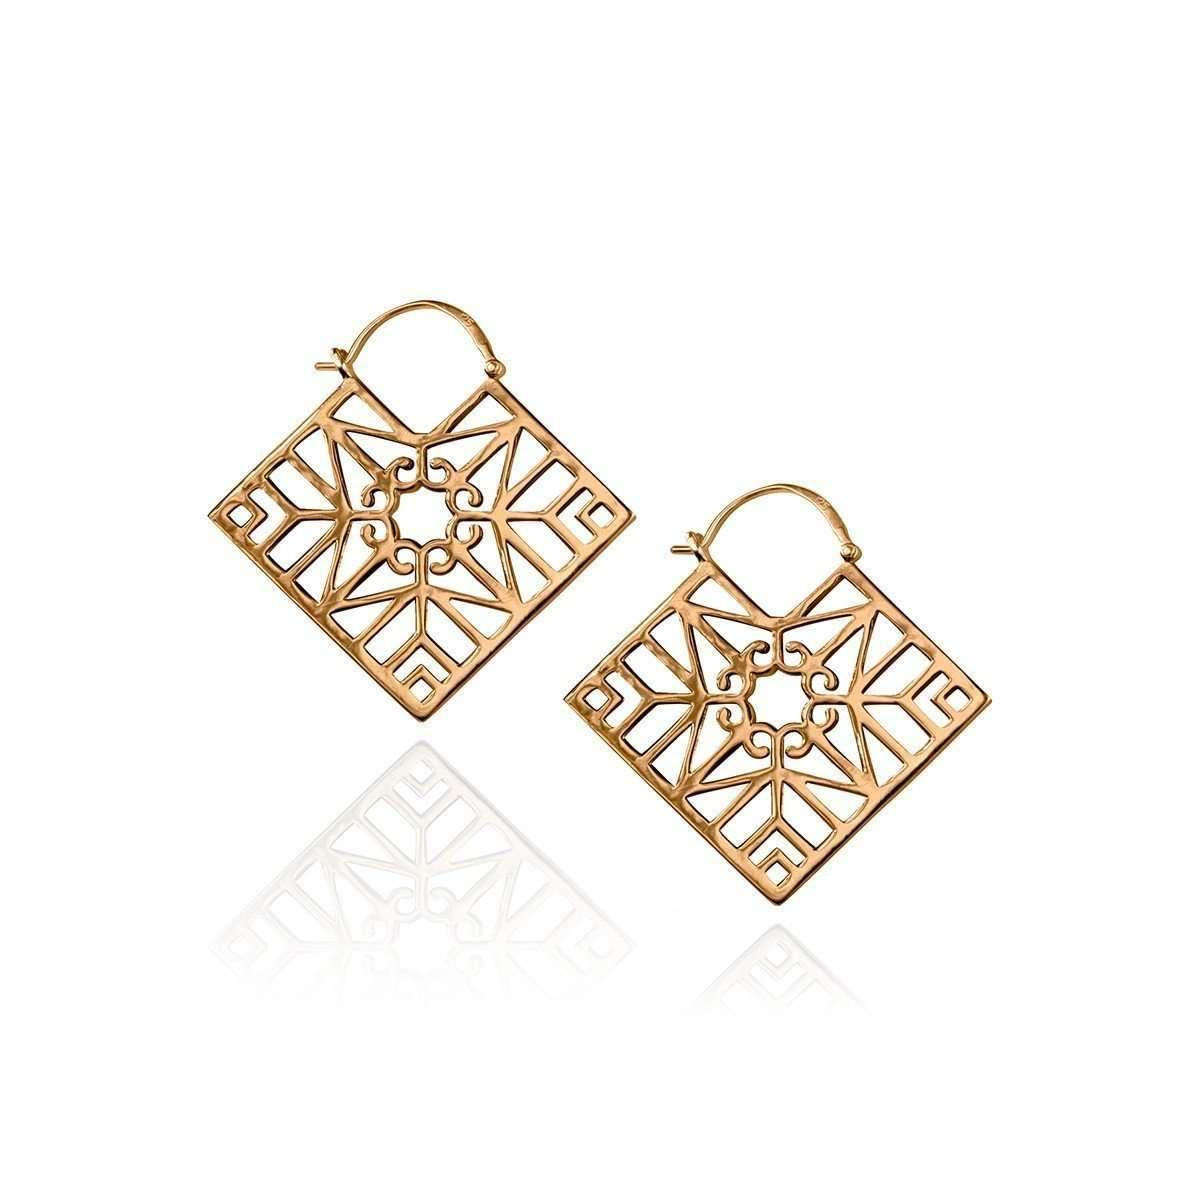 Zefyr Bokeo Earrings Rose Gold EetsjP3F